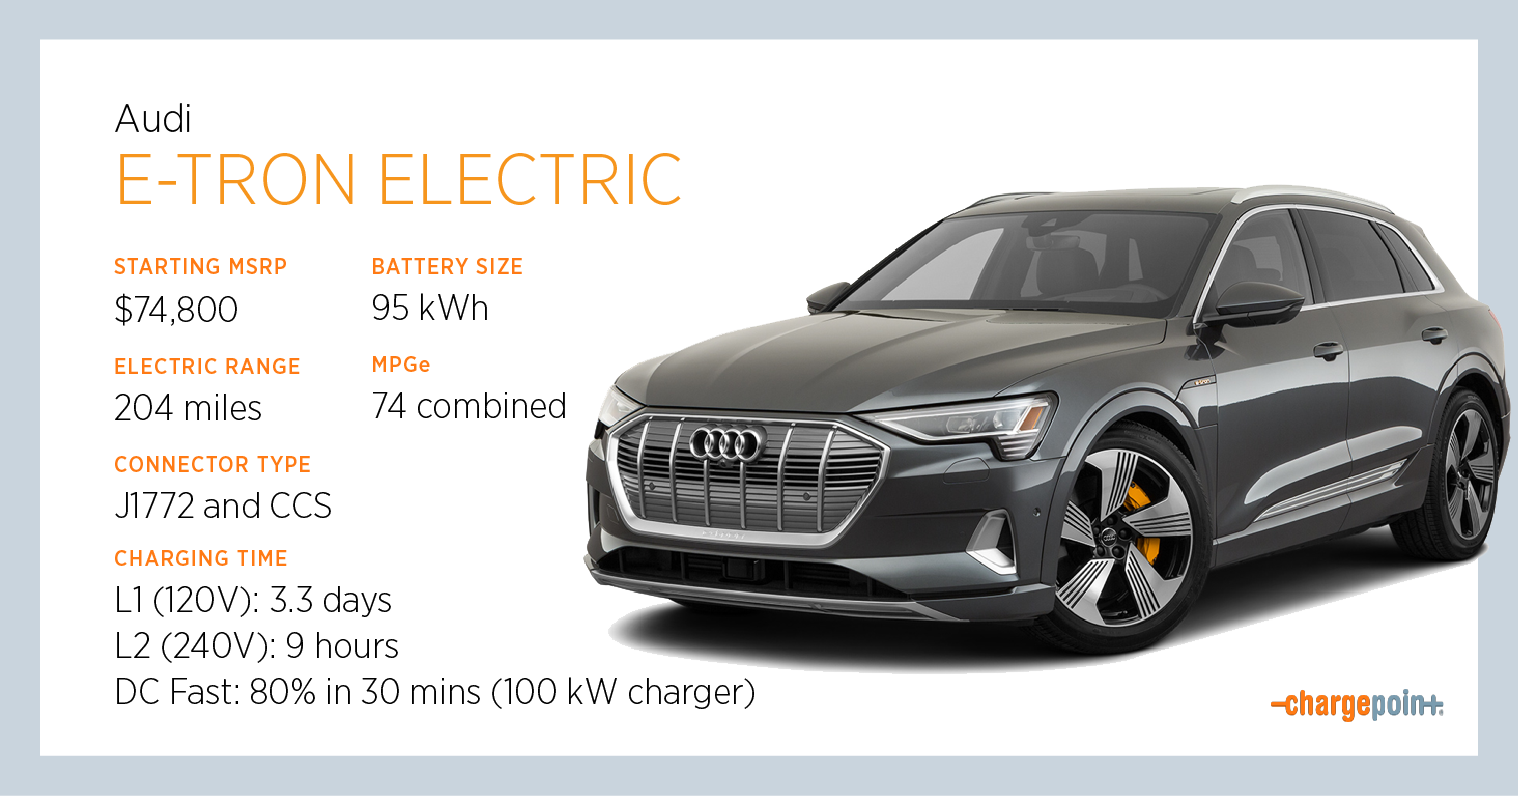 Everything You Need To Know About Charging The Audi E Tron Suv Chargepoint